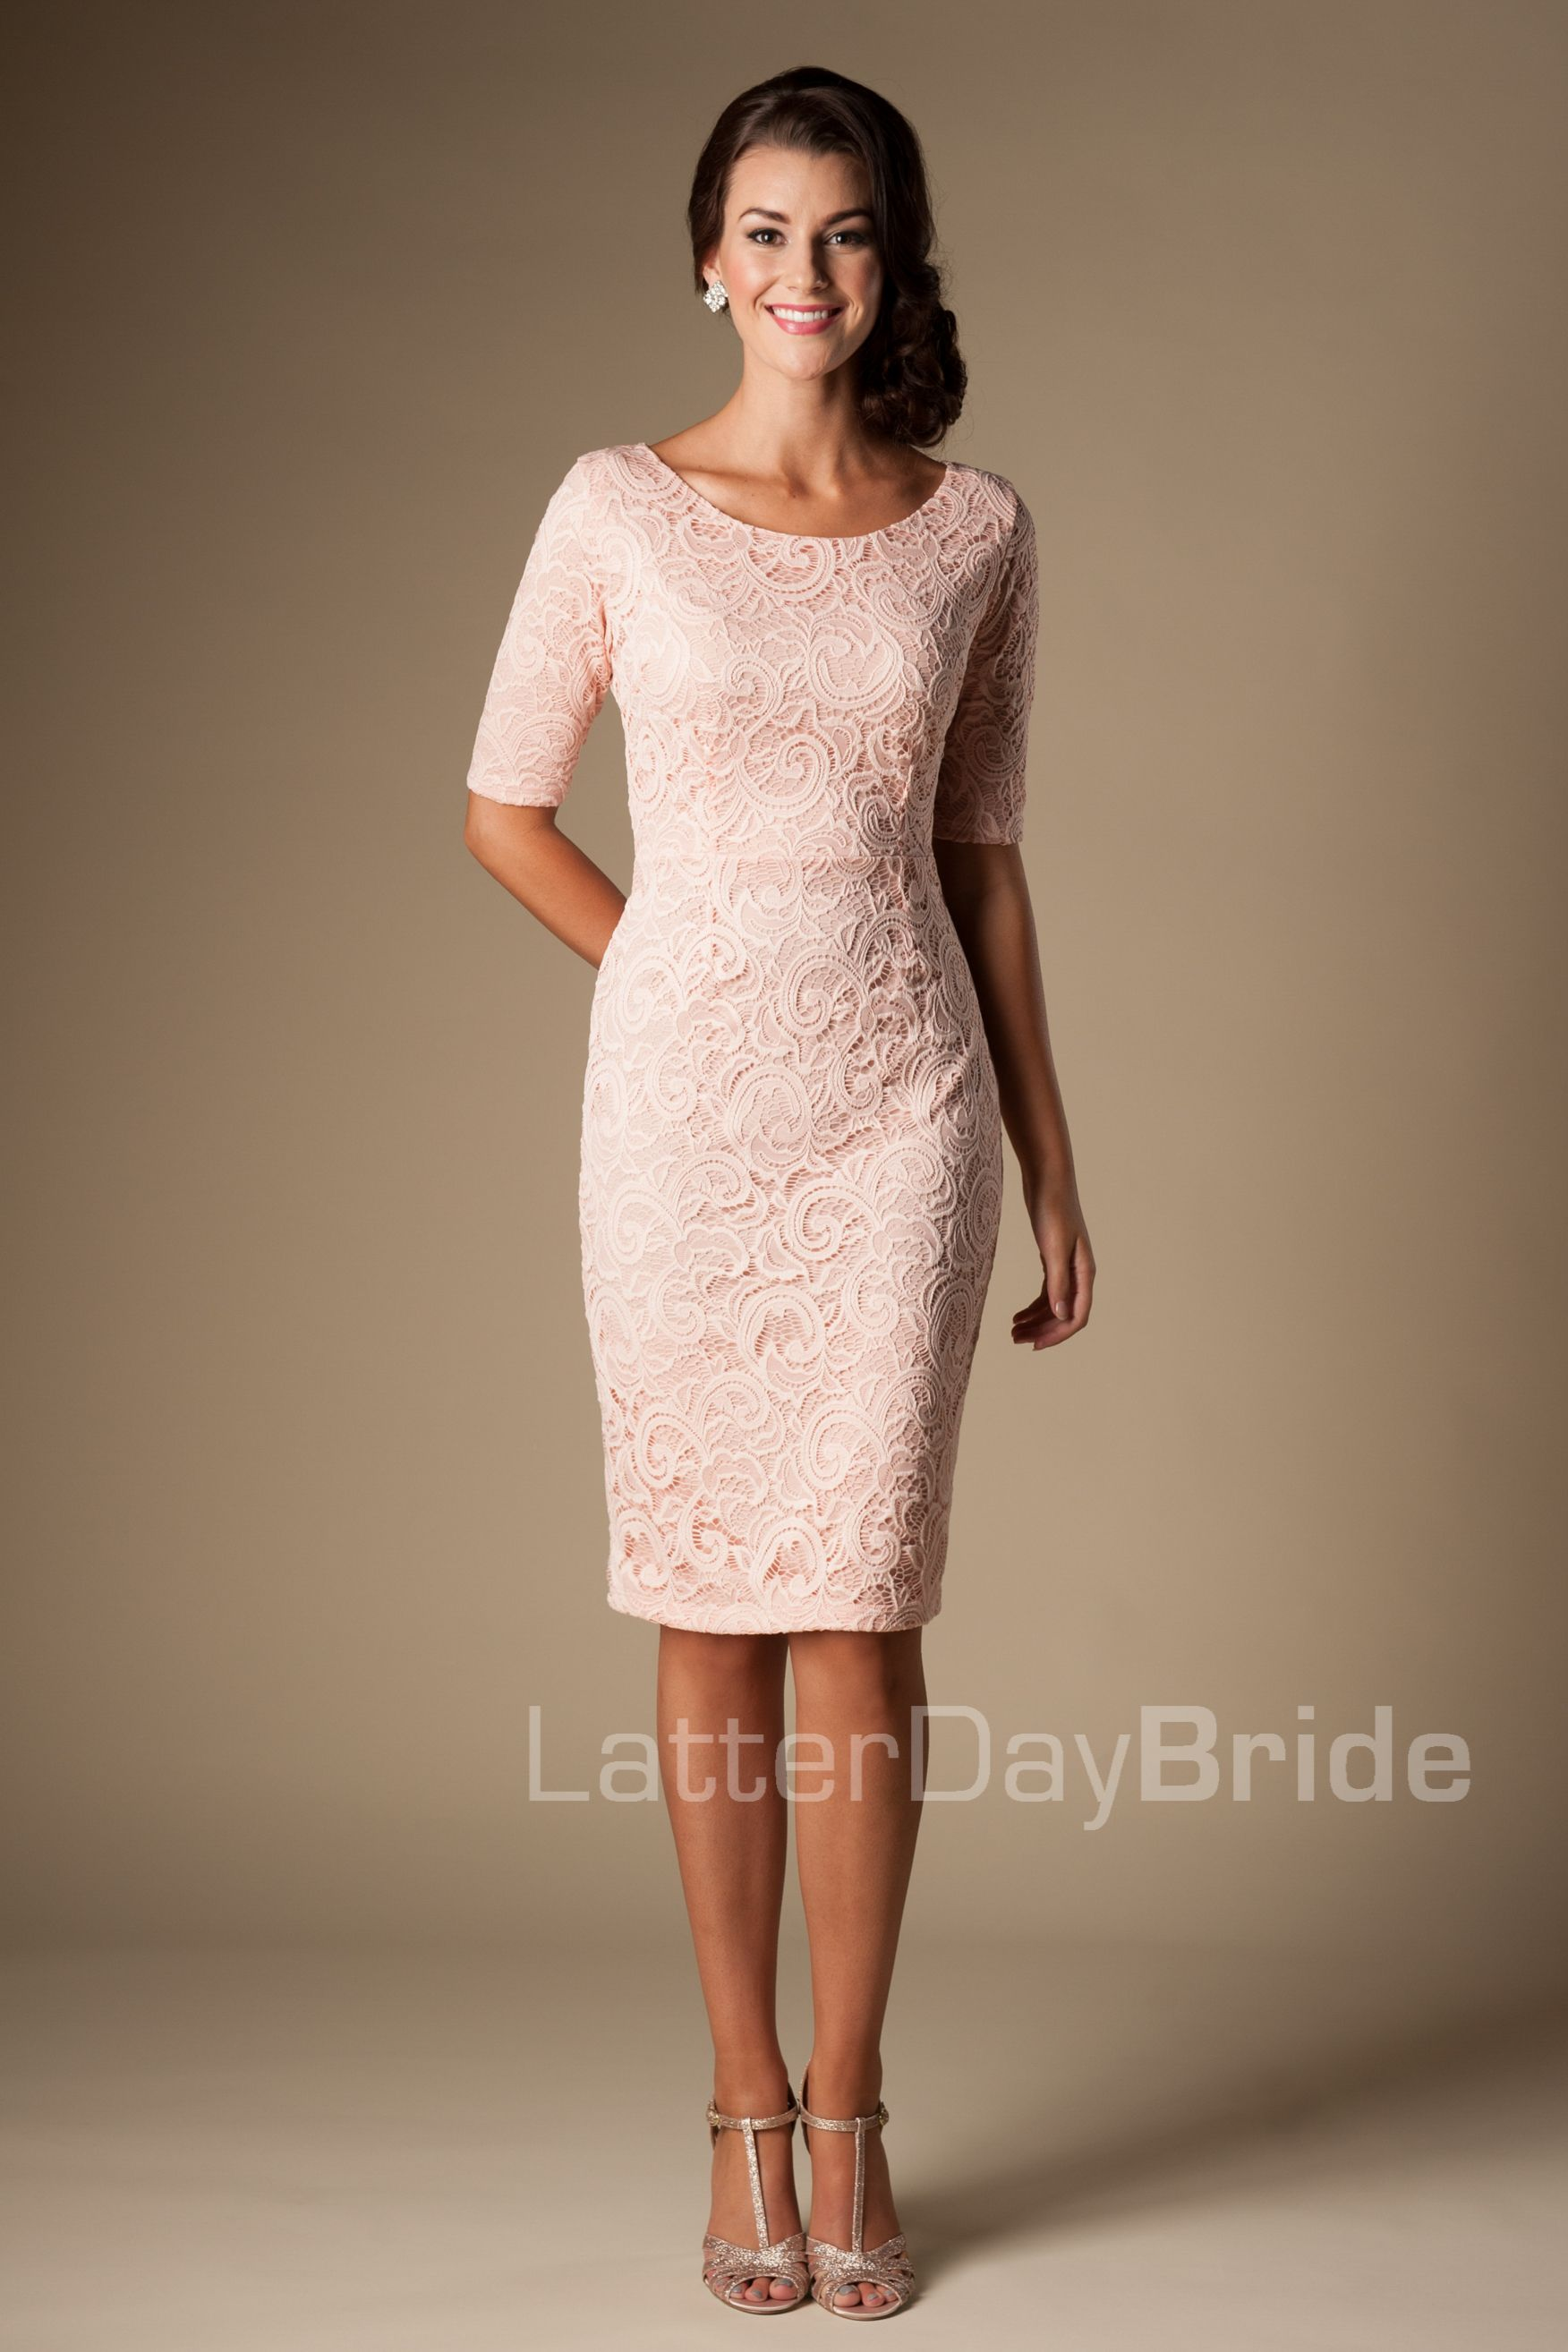 Modest bridesmaid dresses mw22874 cocktail dress option modest bridesmaid dresses mw22874 cocktail dress option ombrellifo Choice Image